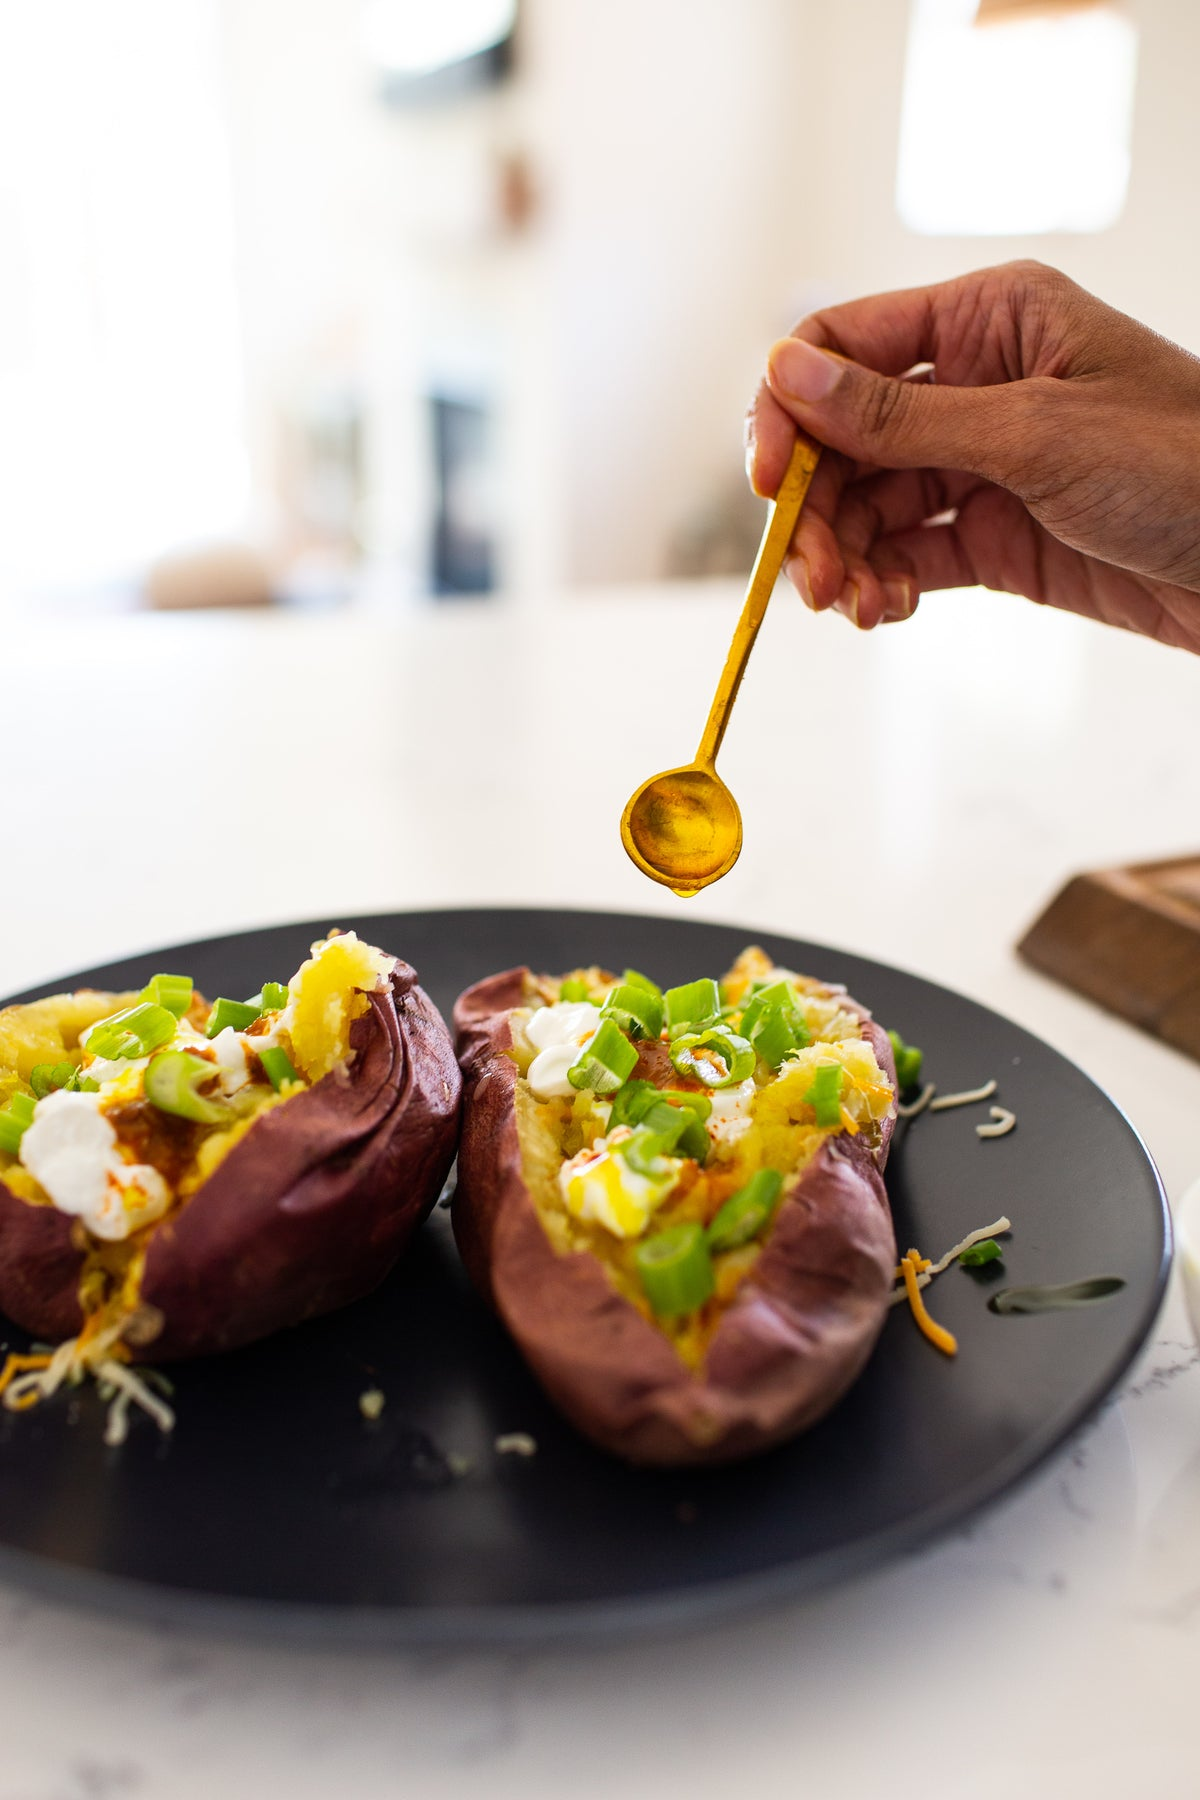 Perfect Messy Baked Potatoes with a Turmeric Oil Drizzle